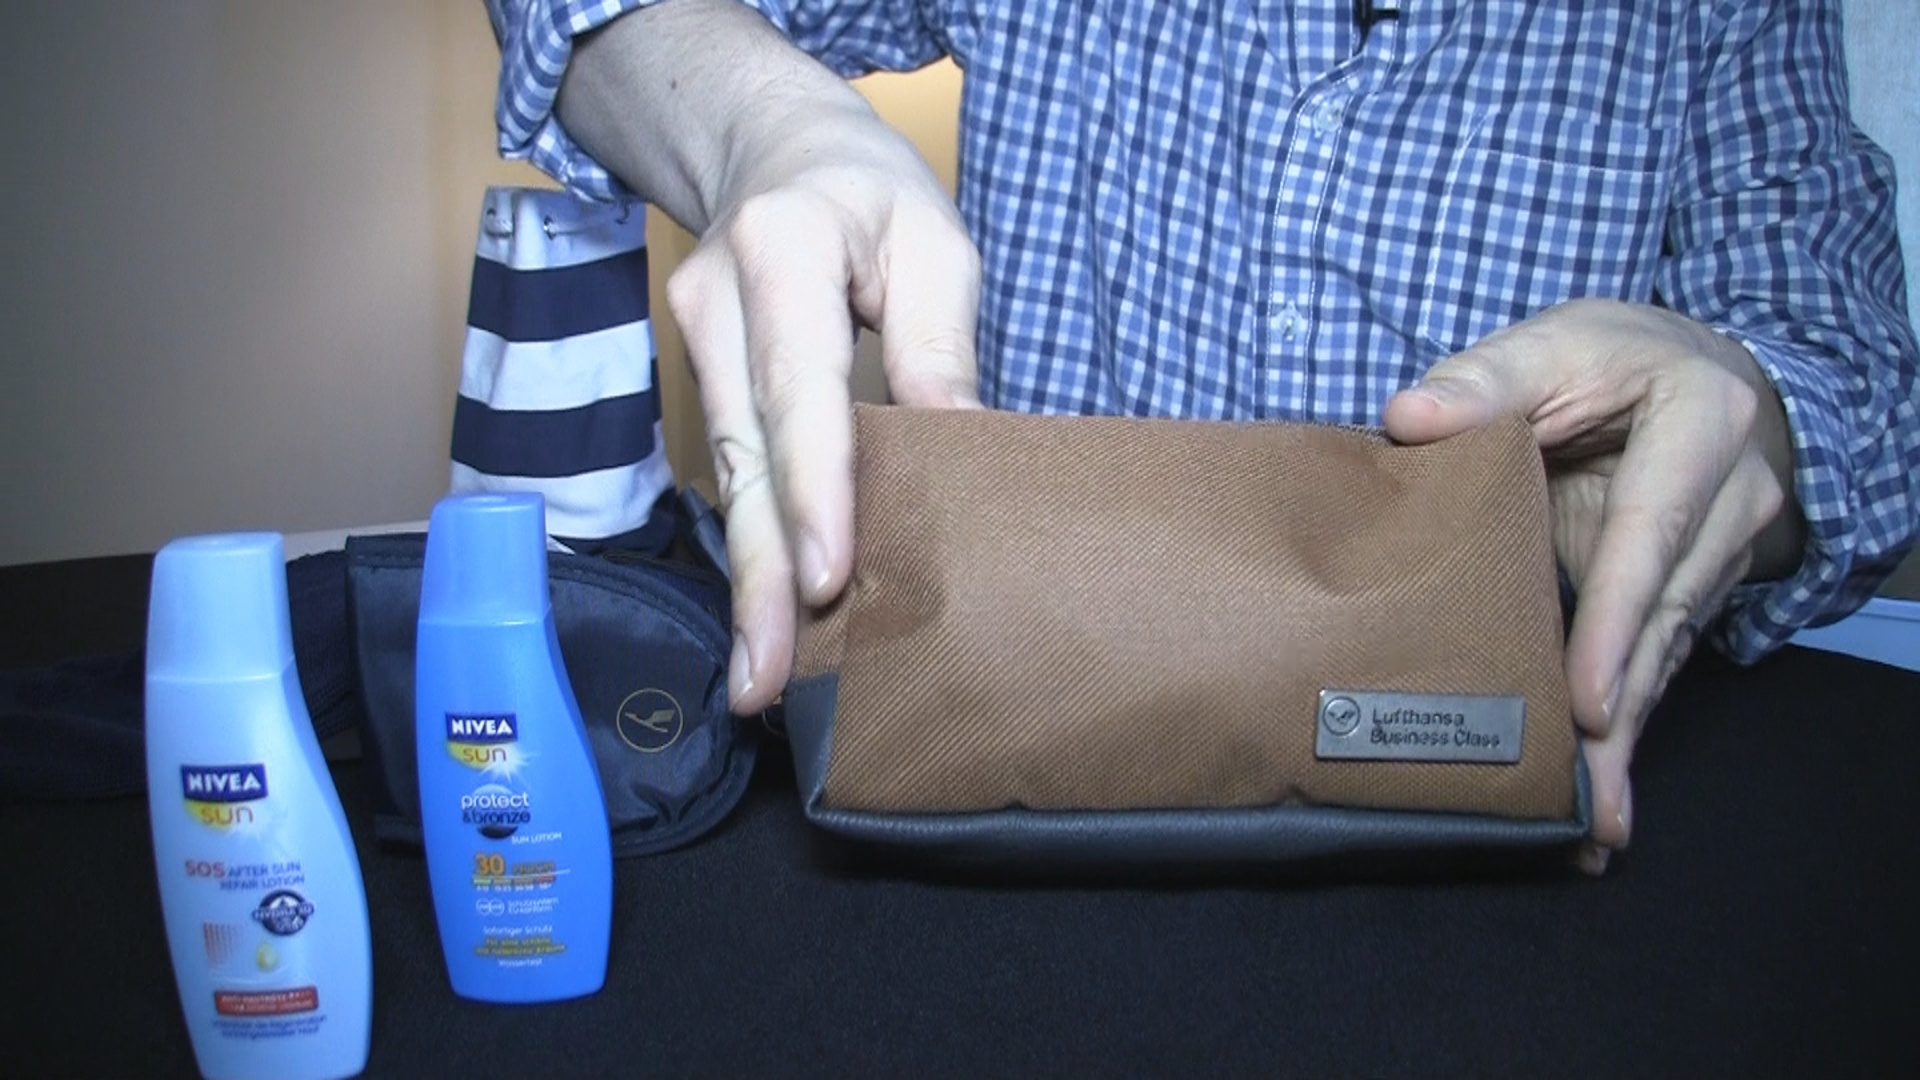 Lufthansa Amenity Kit in Business Class